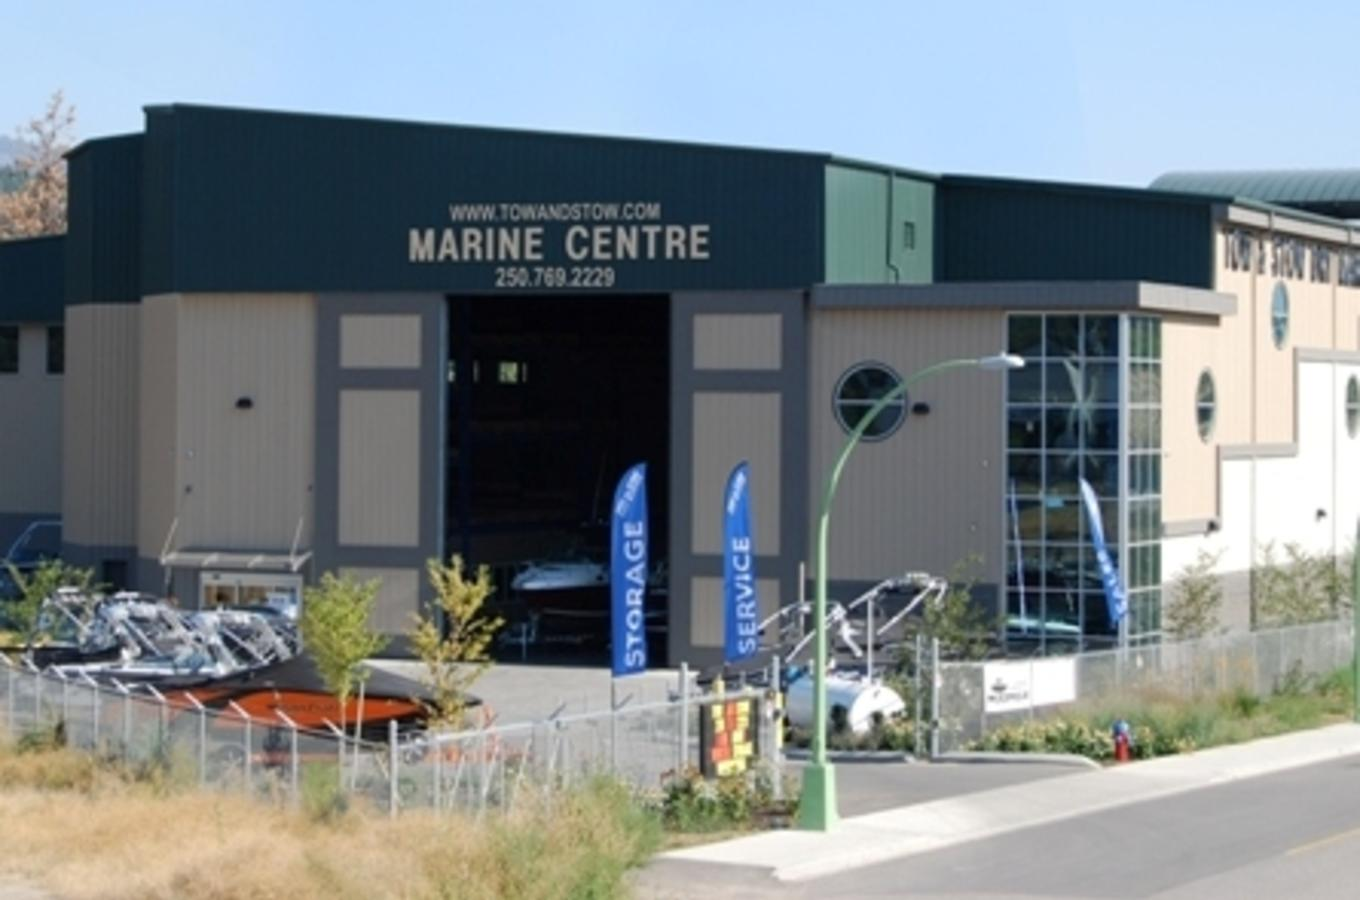 Tow and Stow Dry Marina